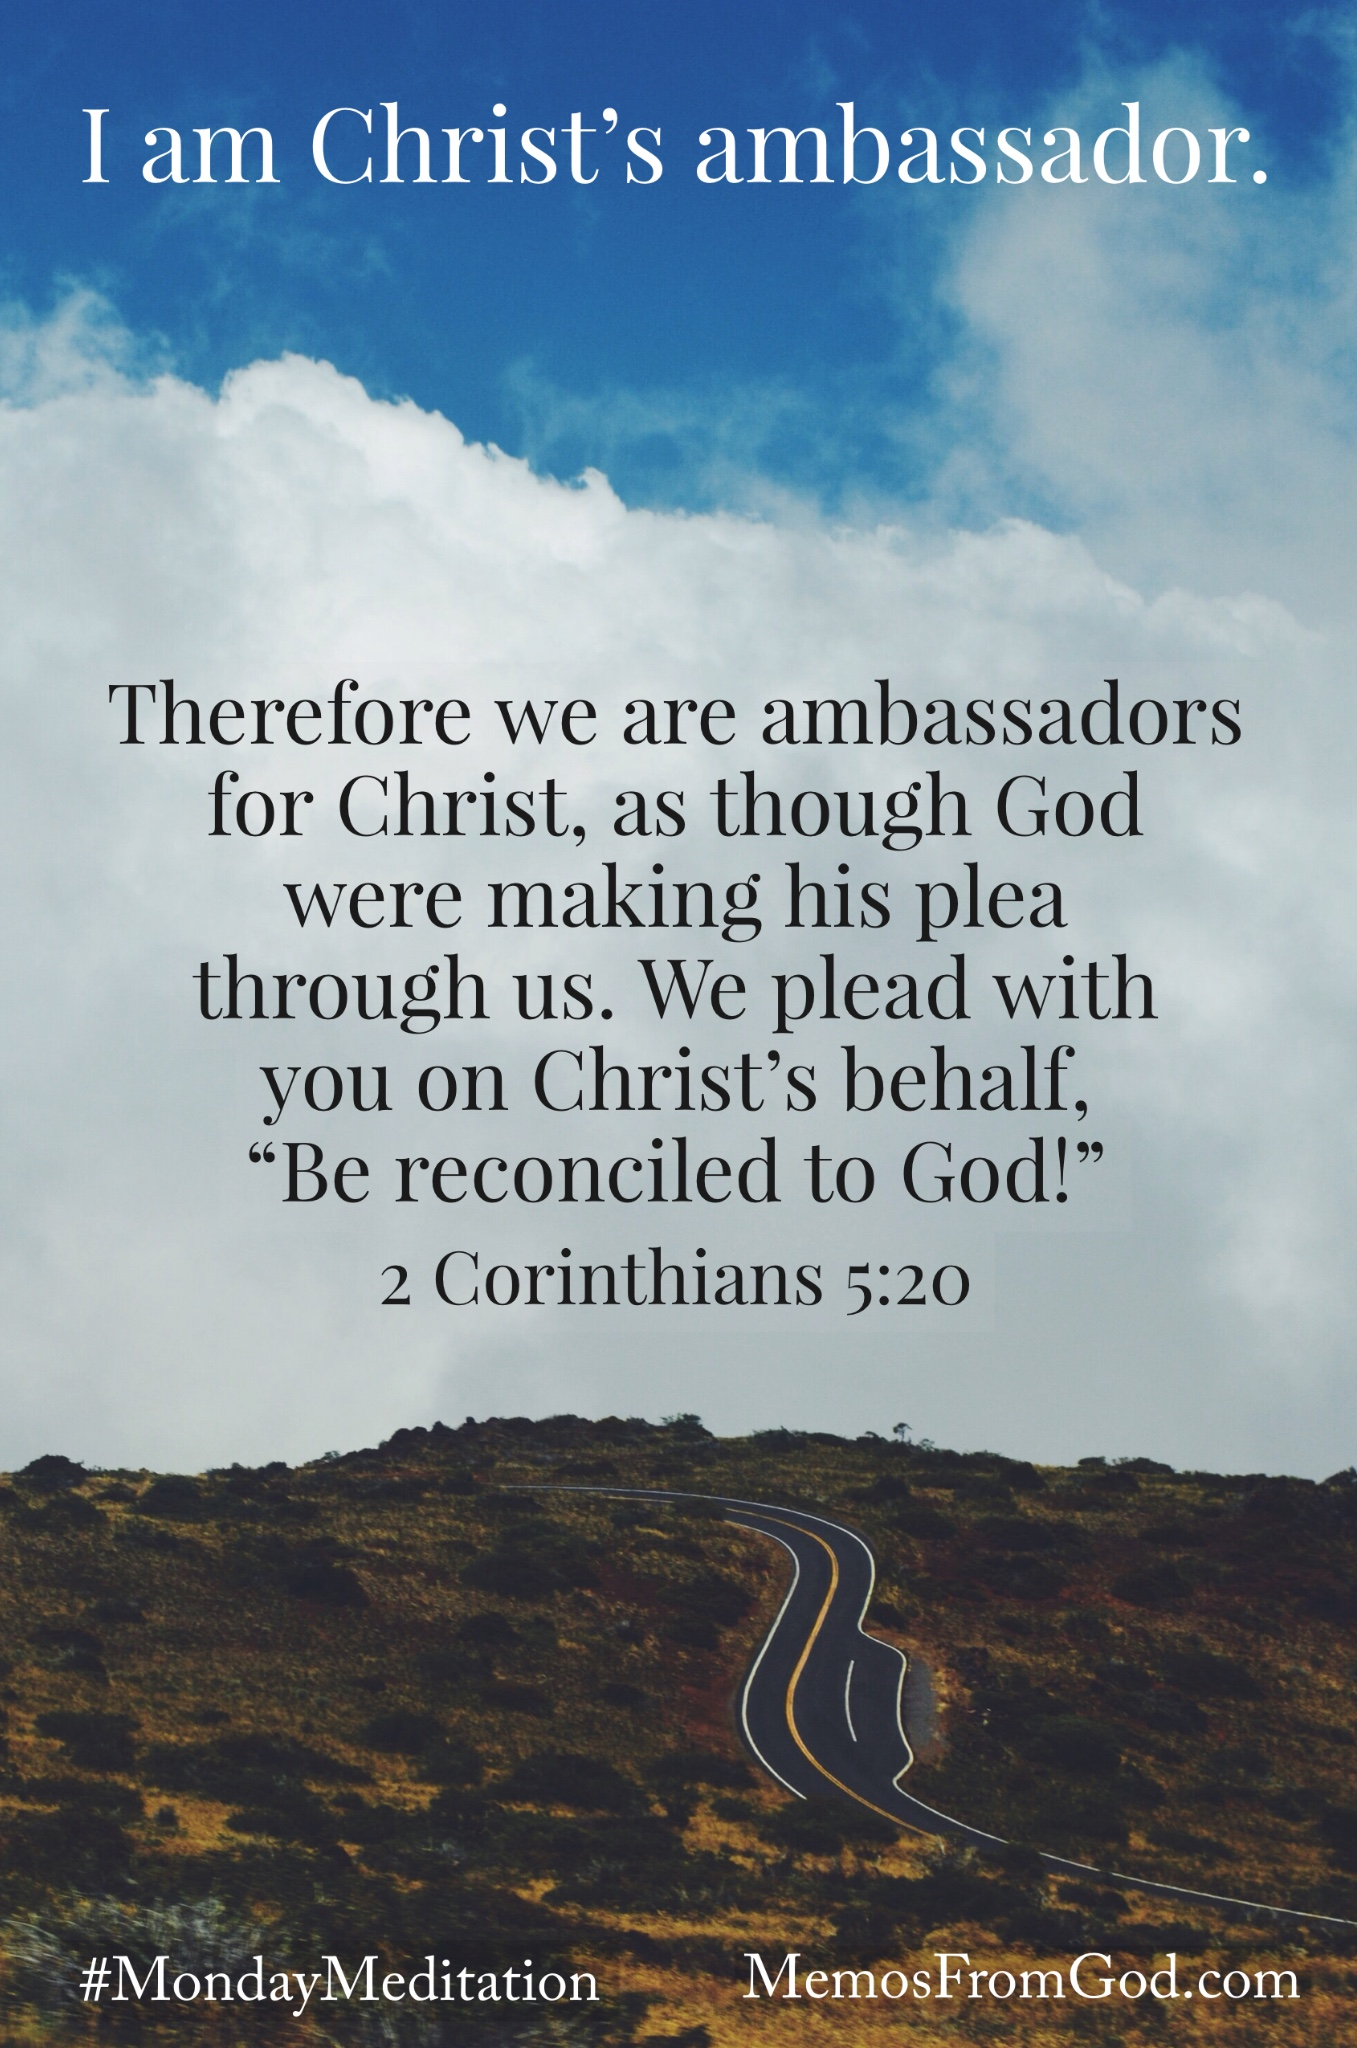 "A winding road going up a hillside under a cloudy sky. Caption: Therefore we are ambassadors for Christ, as though God were making his plea through us. We plead with you on Christ's behalf, ""Be reconciled to God!"" 2 Corinthians 5:20"